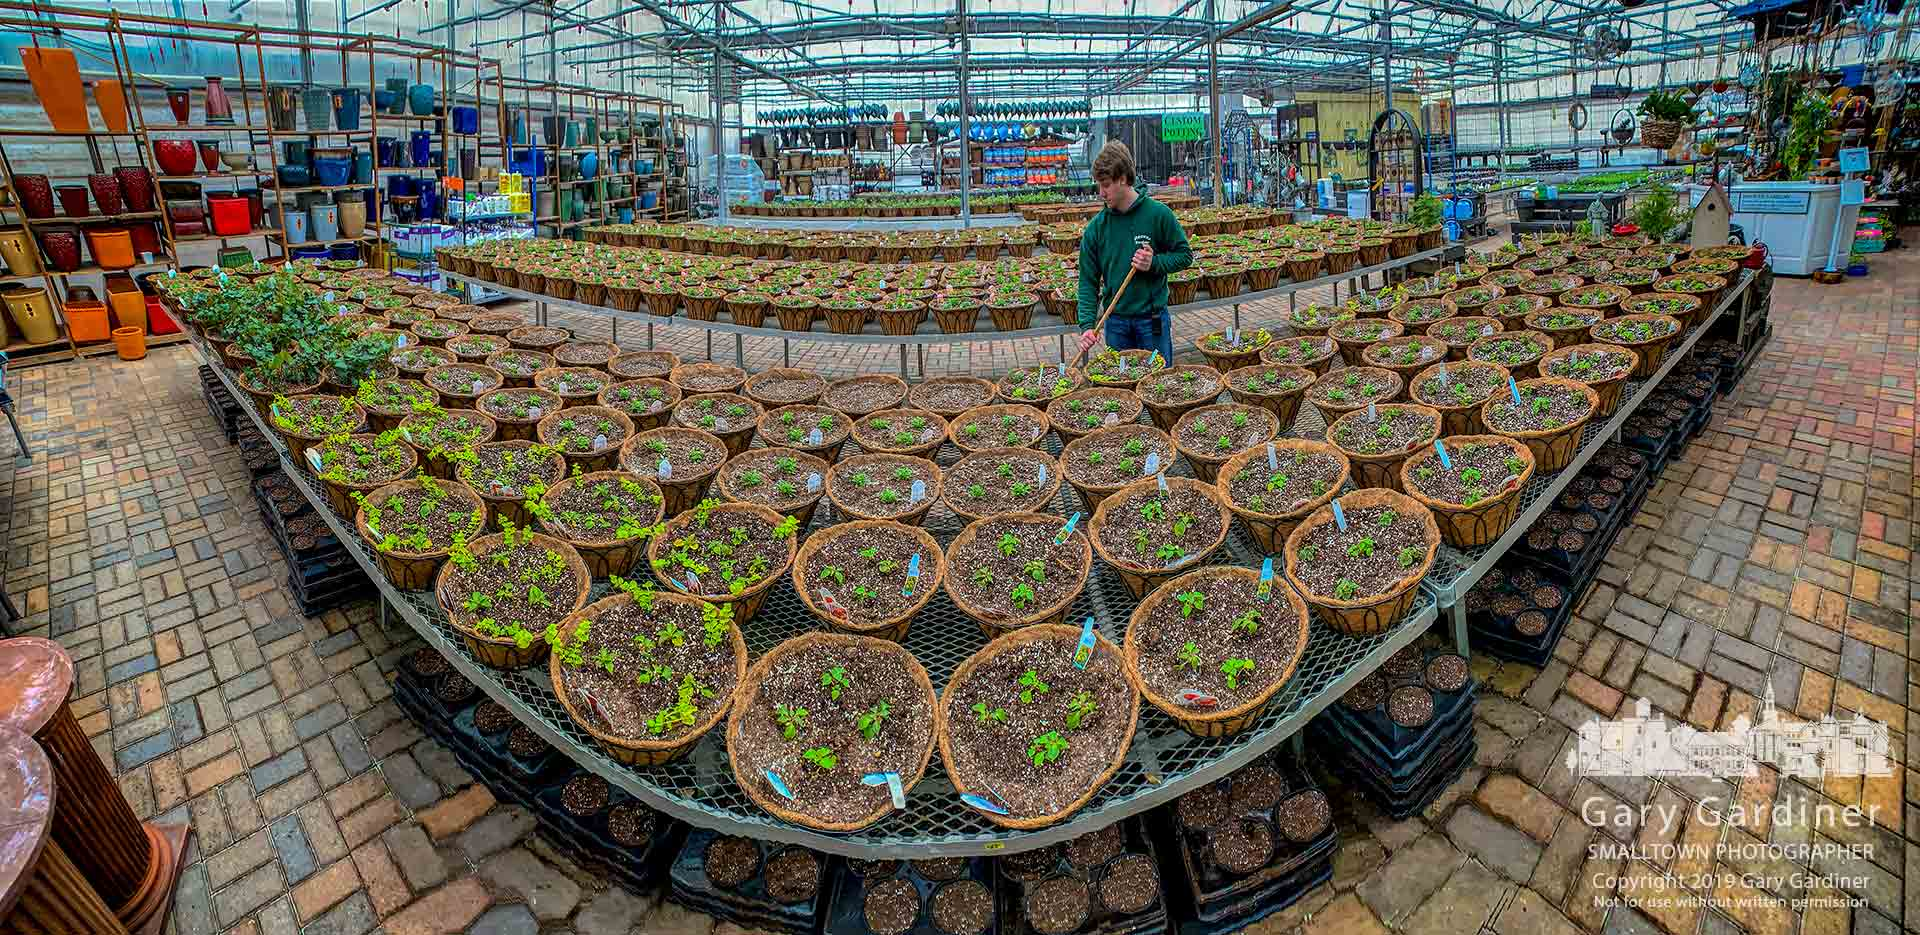 The beginning of Hoover Gardens' spring baskets line portions of the greenhouse tables as the company prepares for customers who favor early plantings before the warmth of summer. My Final Photo for March 10, 2019.